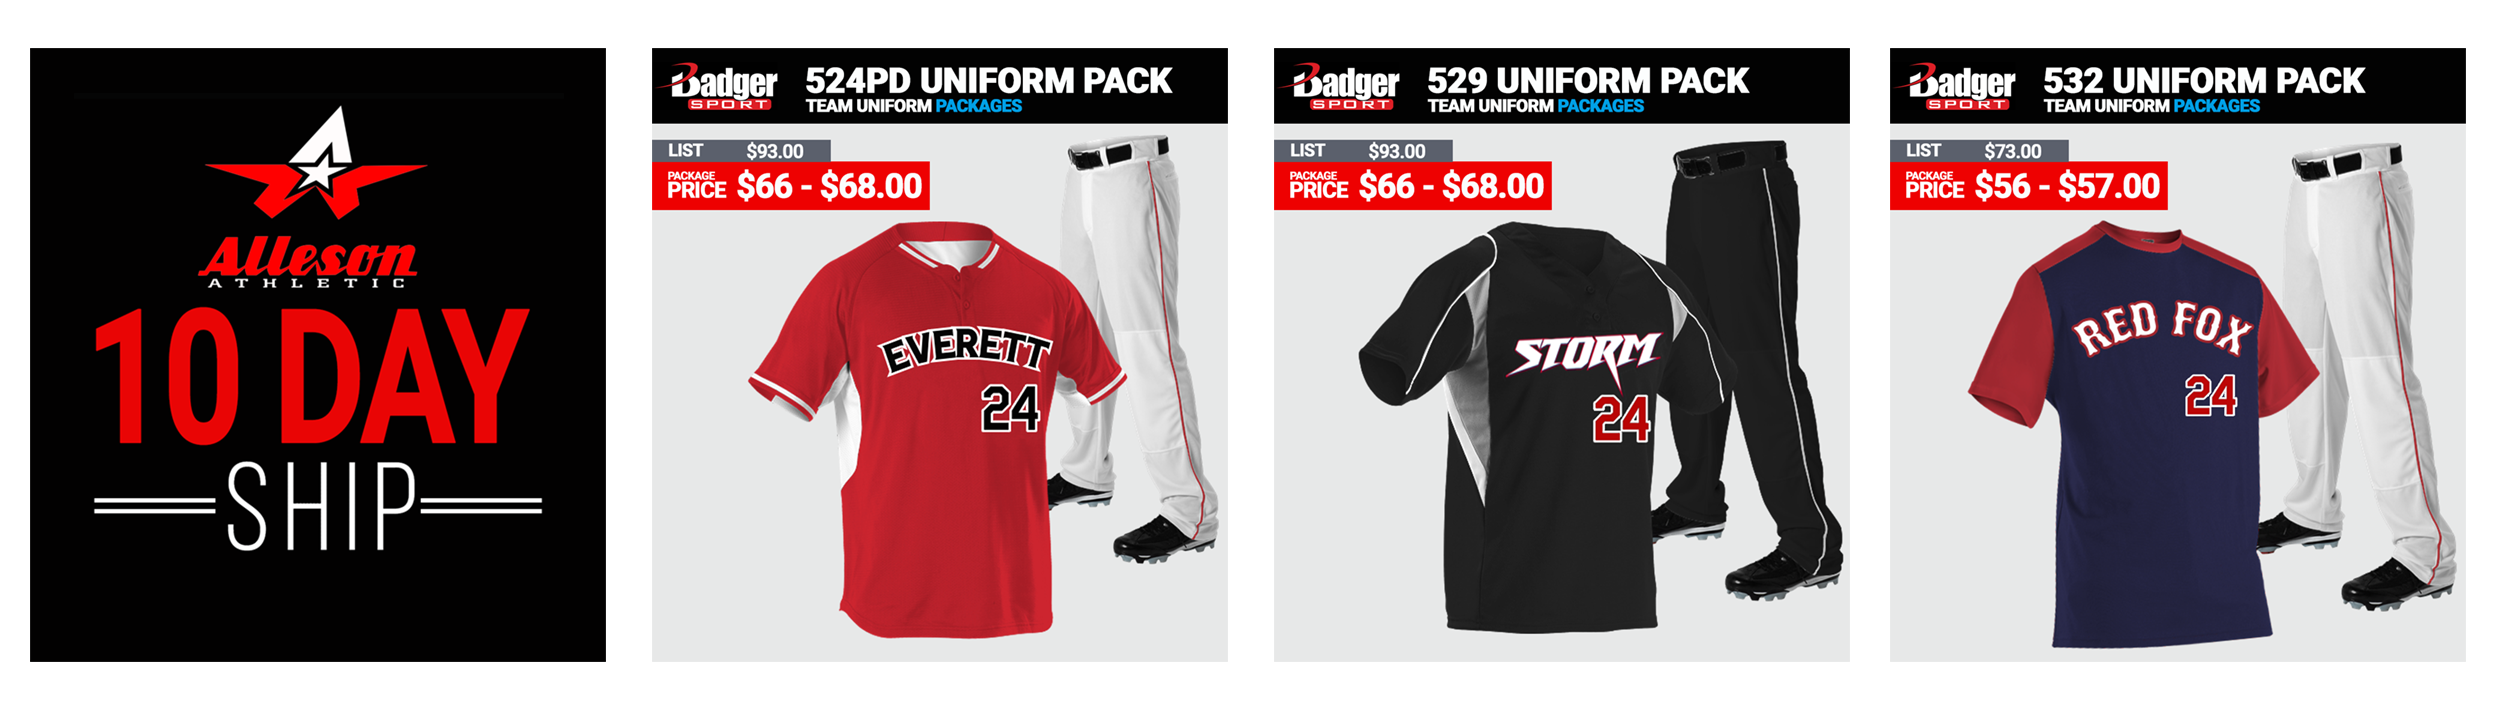 Alleson Baseball Uniform Packages